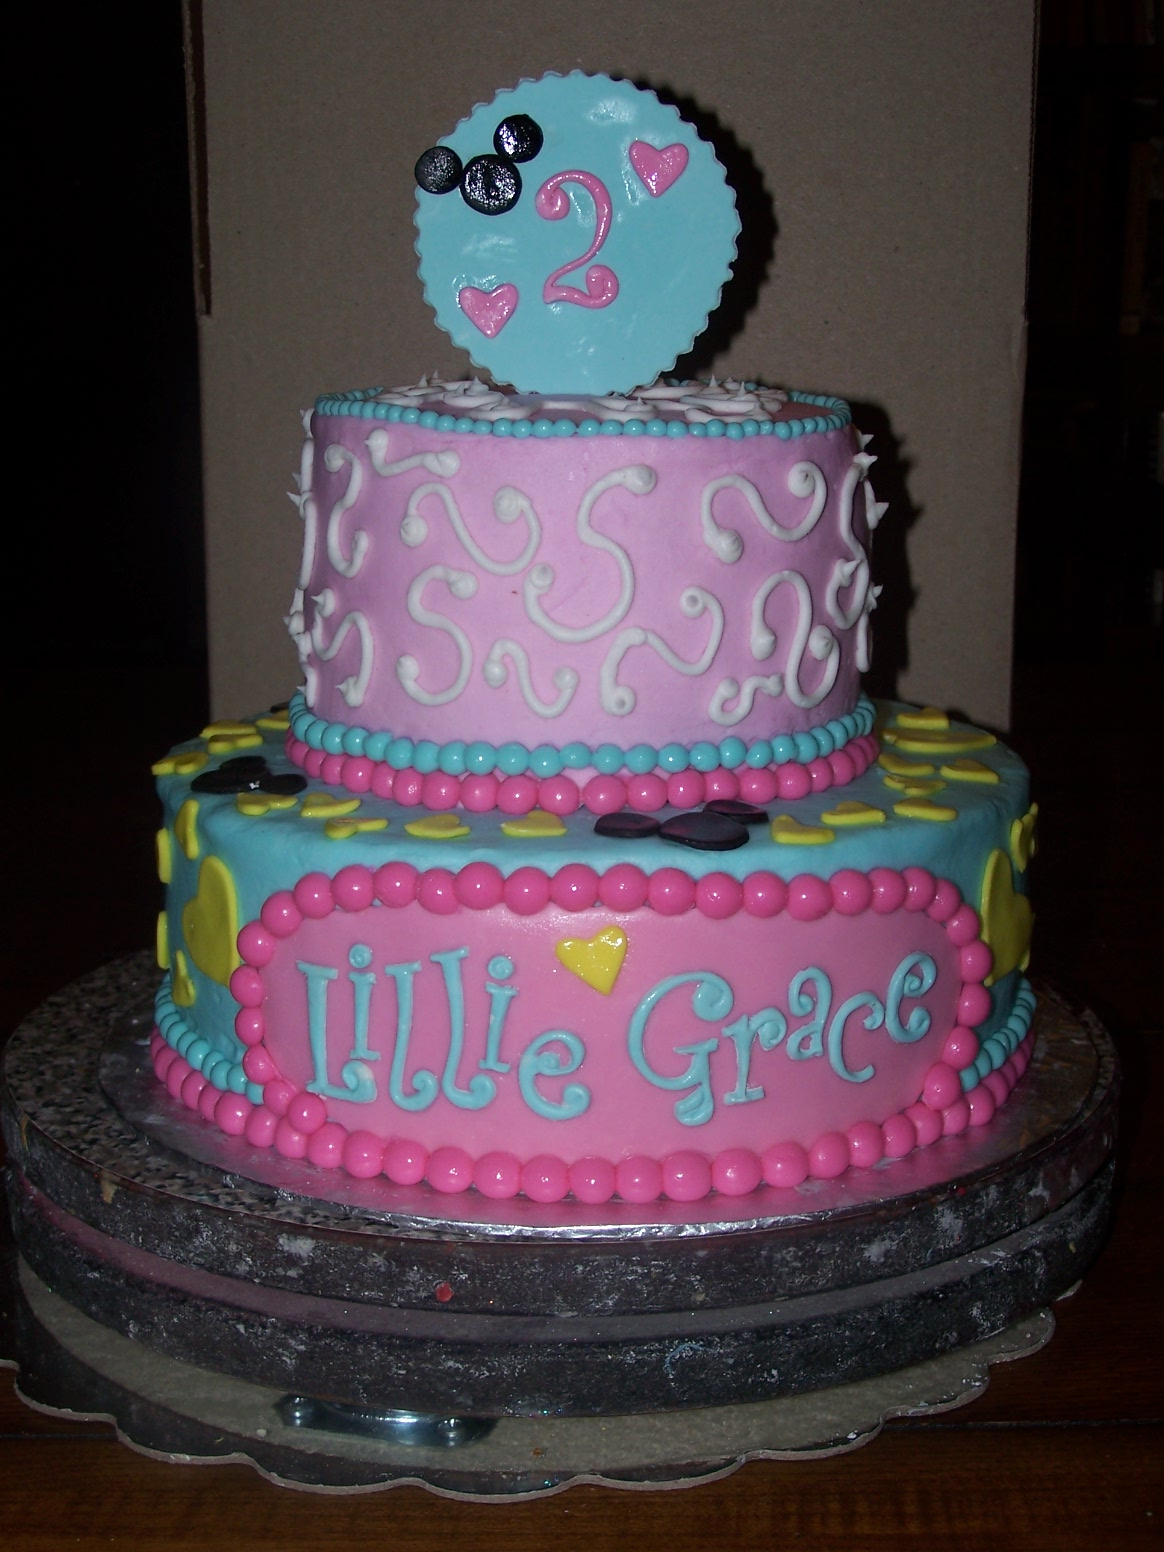 Learning To Fly Cakes and Pastries: Happy Birthday, Lillie ...